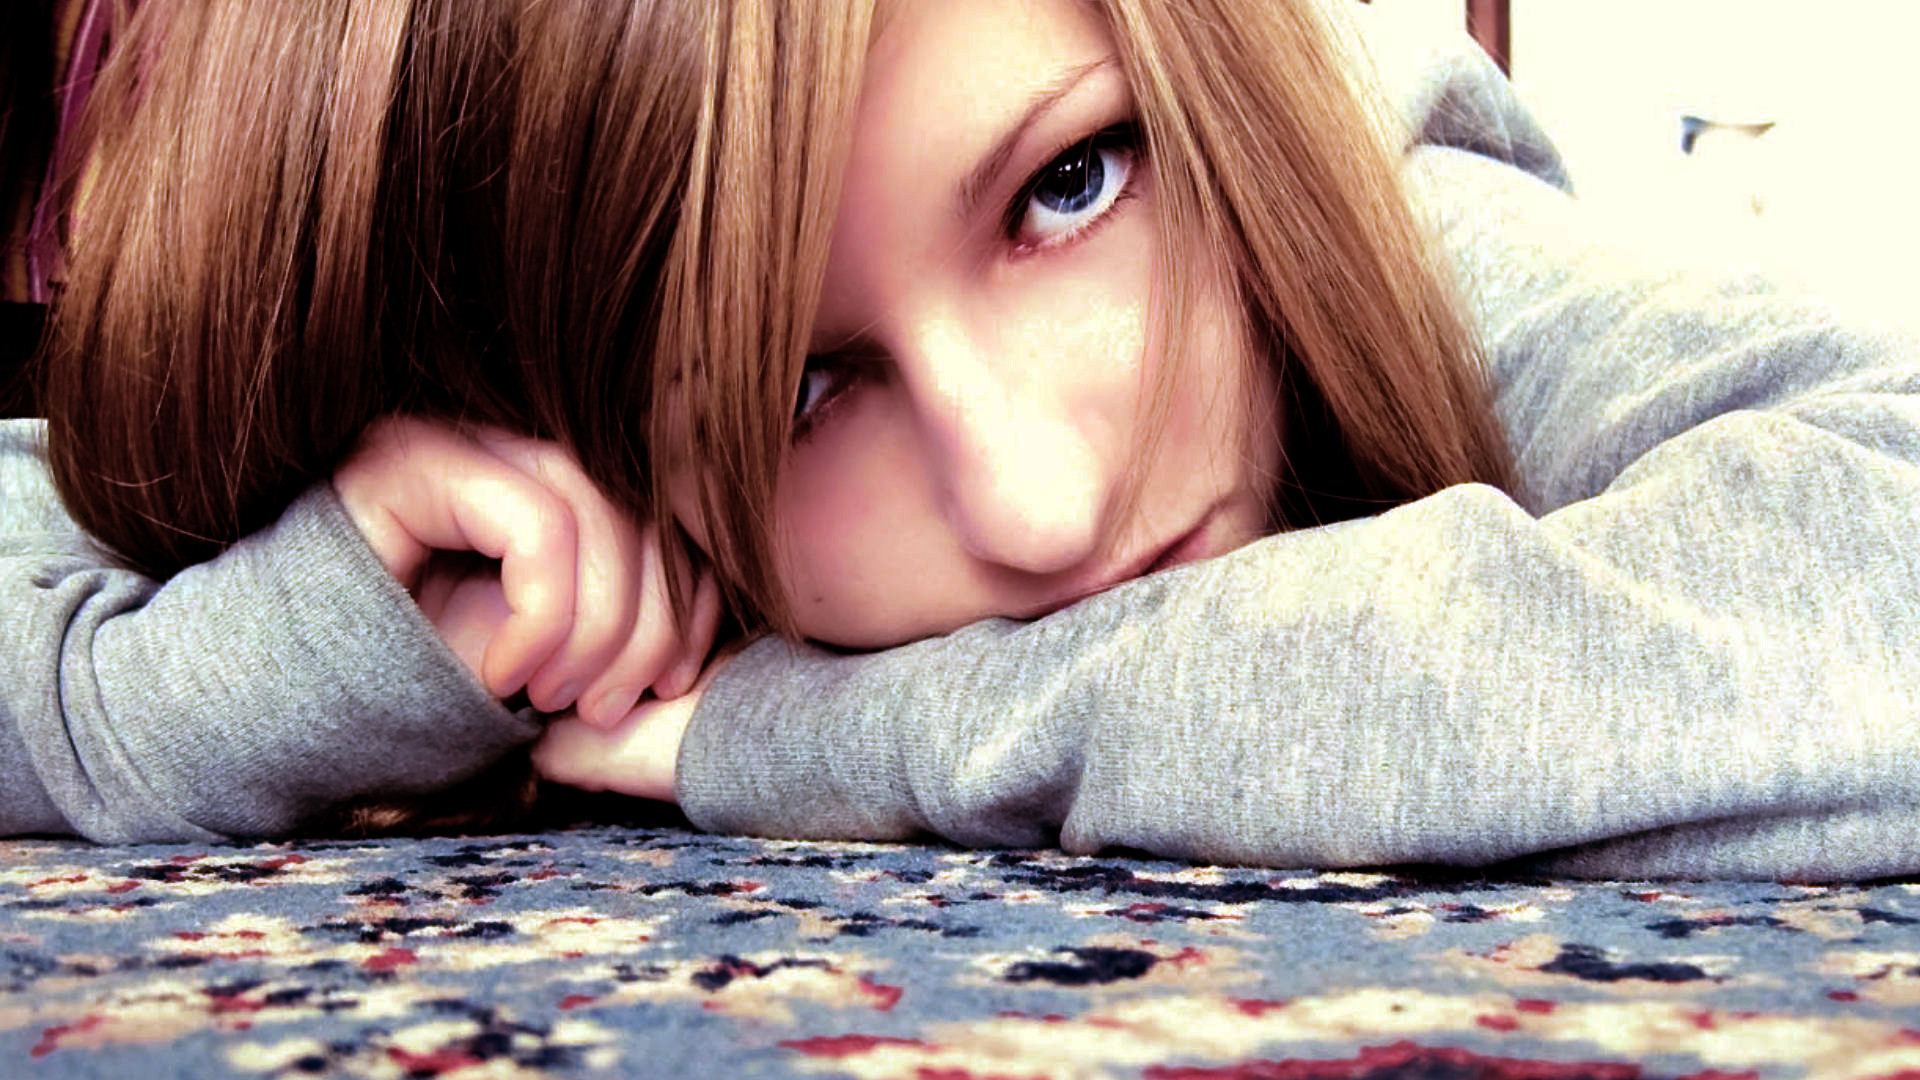 Sad Girl Wallpapers 64 Background Pictures